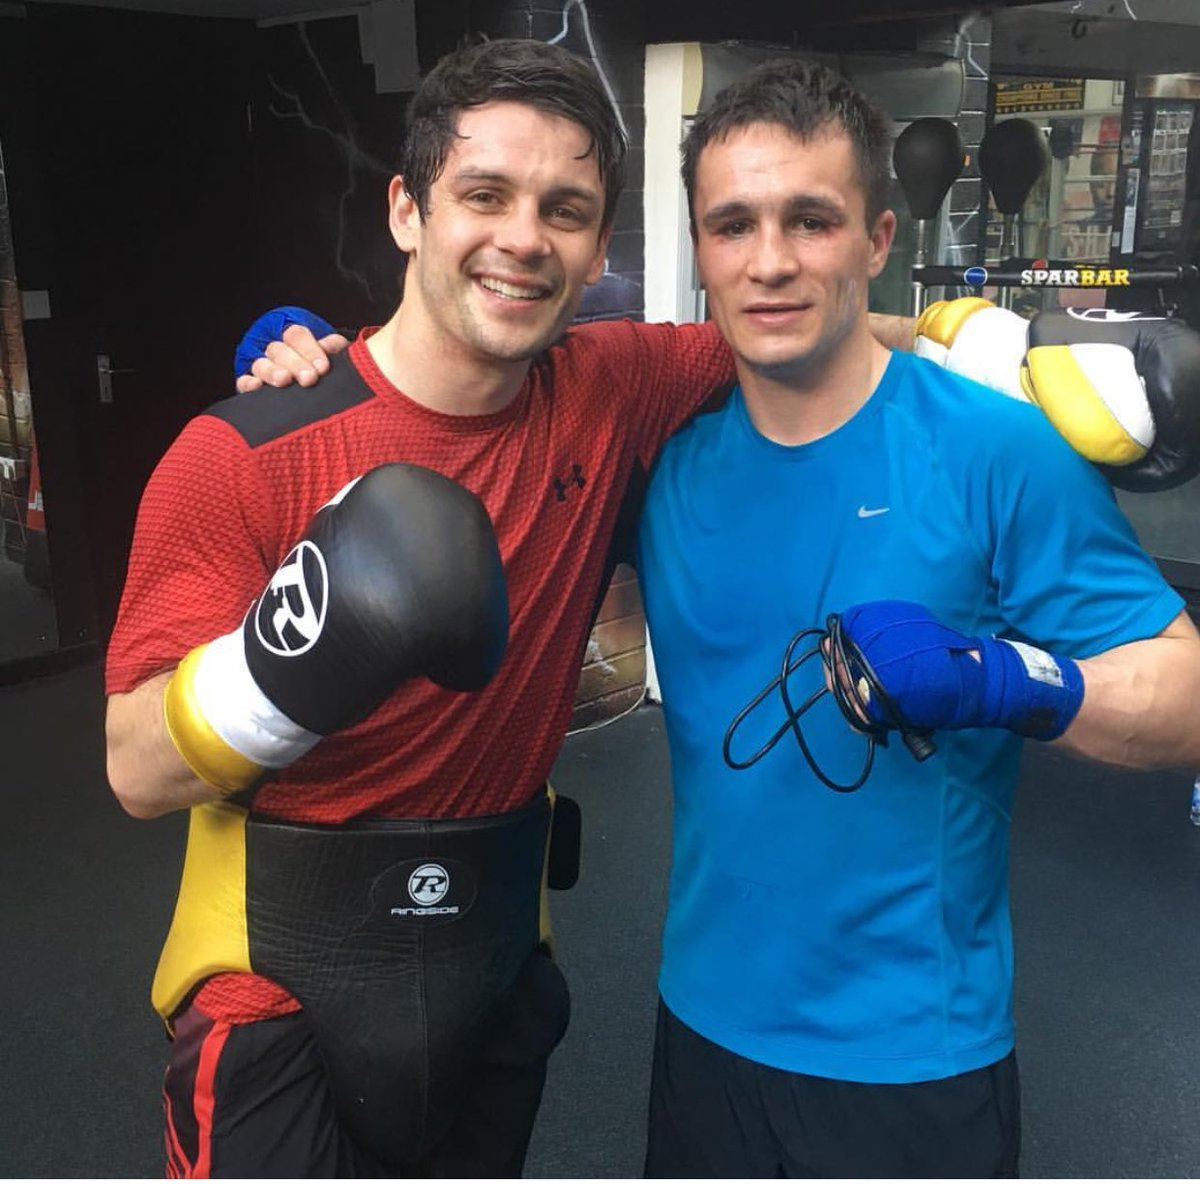 It&#39;s been a while but @SwiftySmith after his WBA World title fight is back &amp;  ready to go again , fight date announced soon .... #swifty <br>http://pic.twitter.com/KHwh7t1LCO